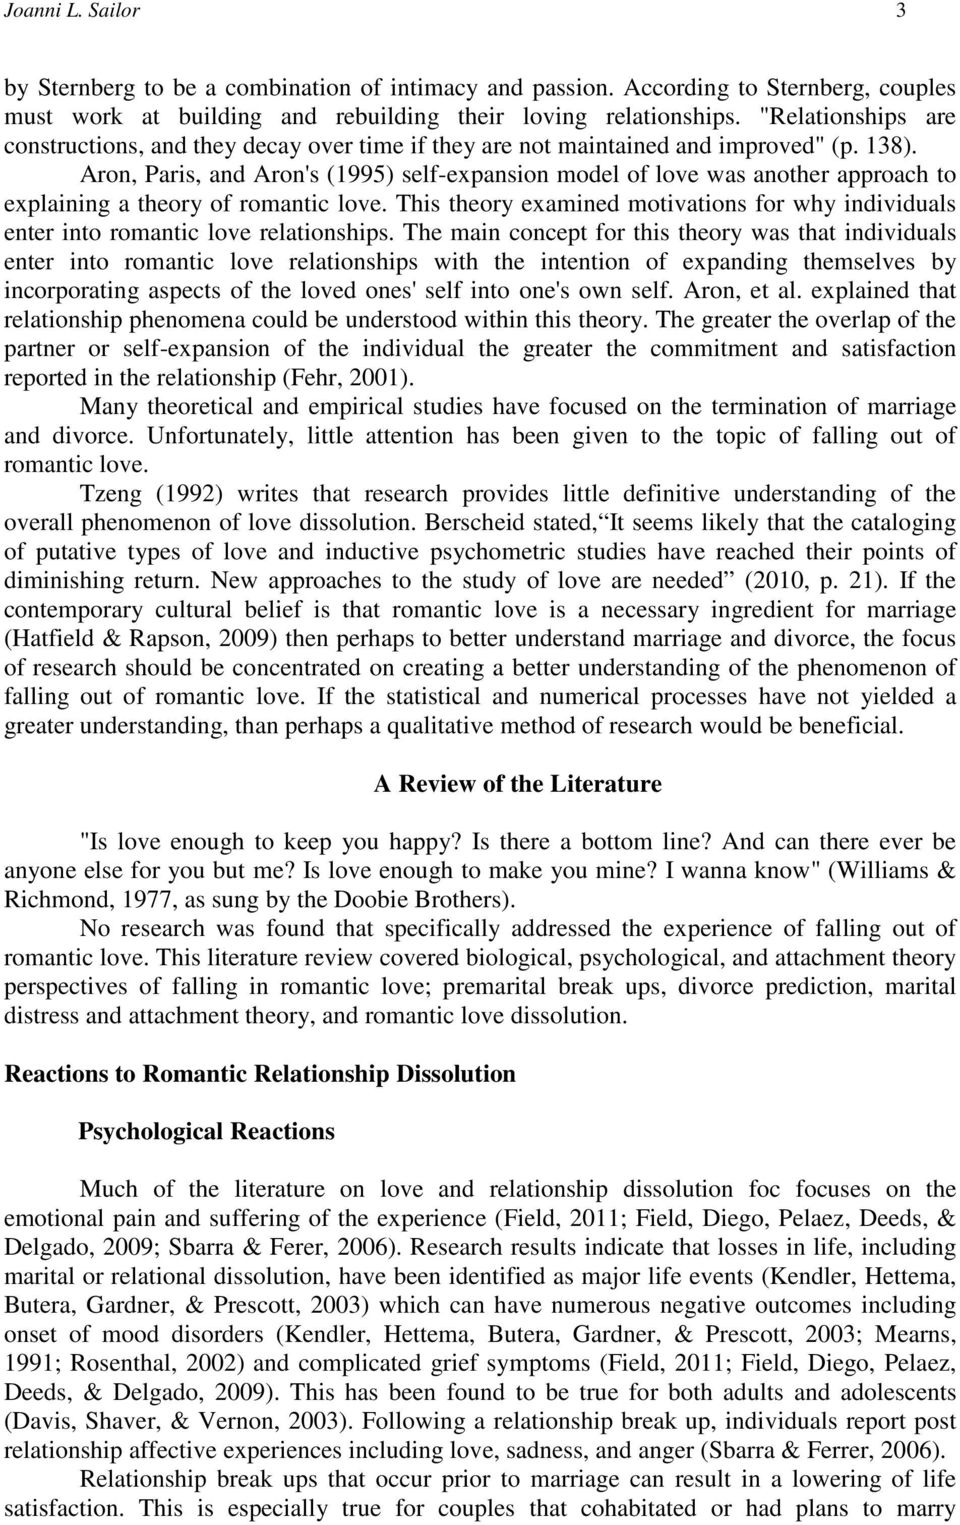 Aron, Paris, and Aron's (1995) self-expansion model of love was another approach to explaining a theory of romantic love.